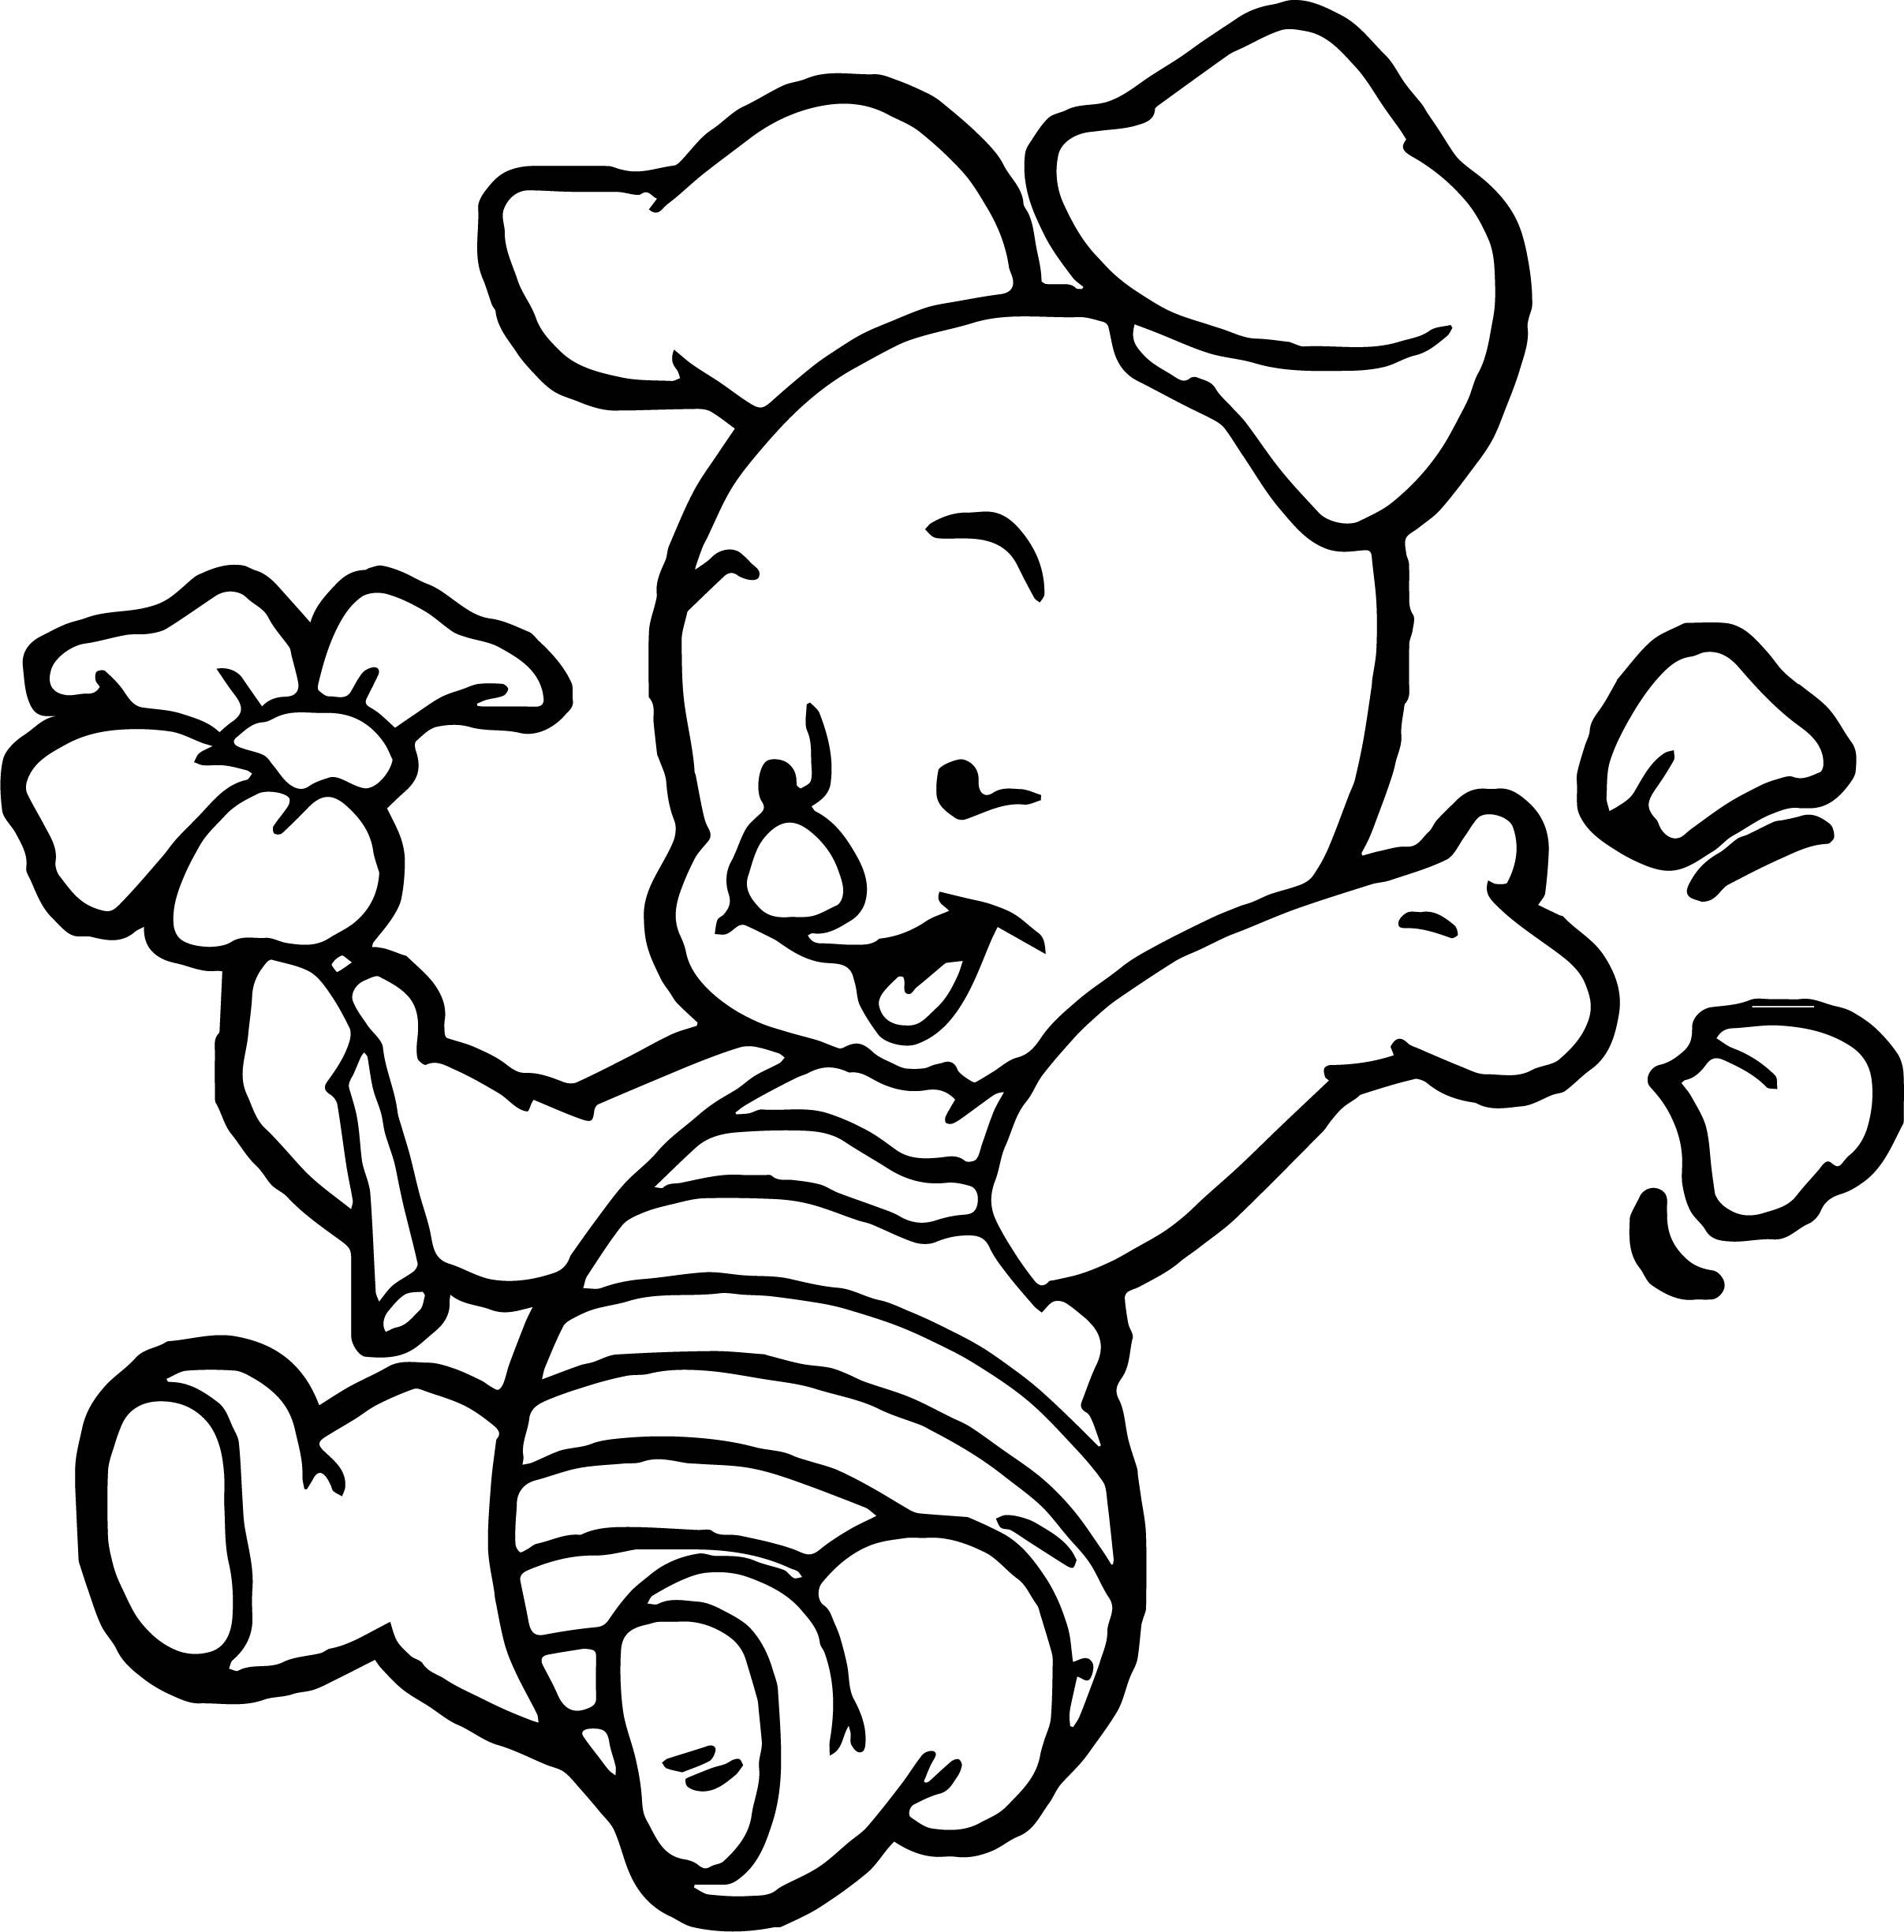 cool Baby Piglet Winnie The Pooh Flower Coloring Page  Winnie the